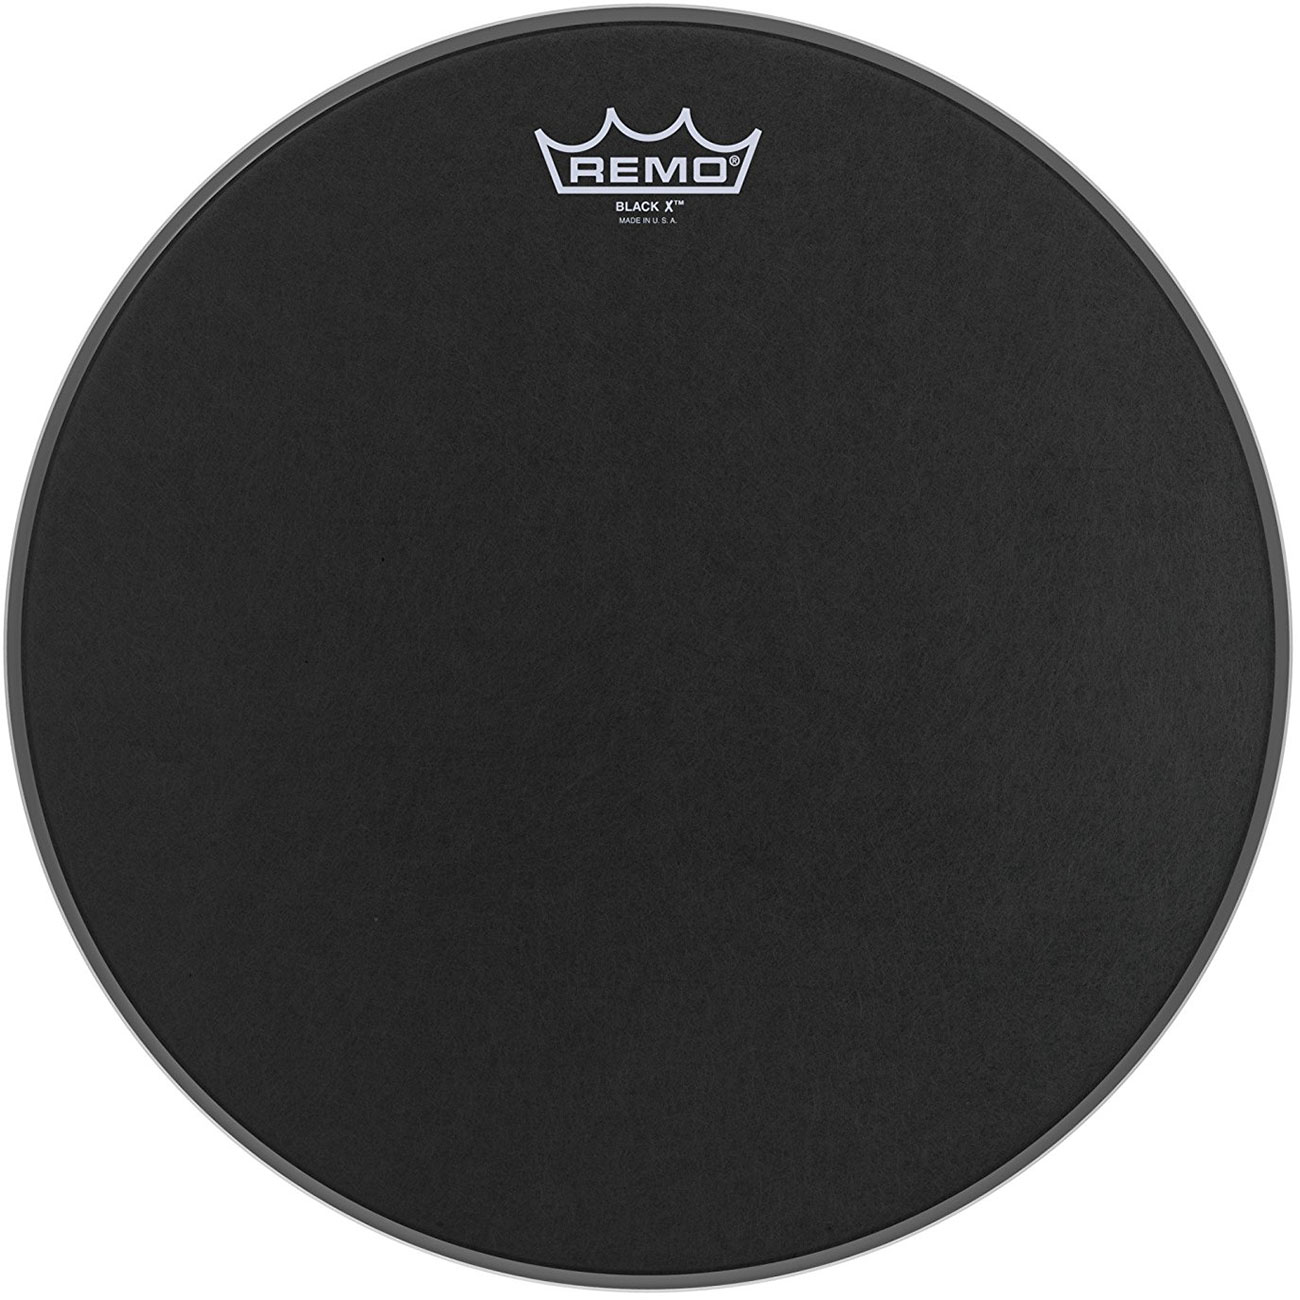 "Remo 14"" Emperor Black X Drum Head"